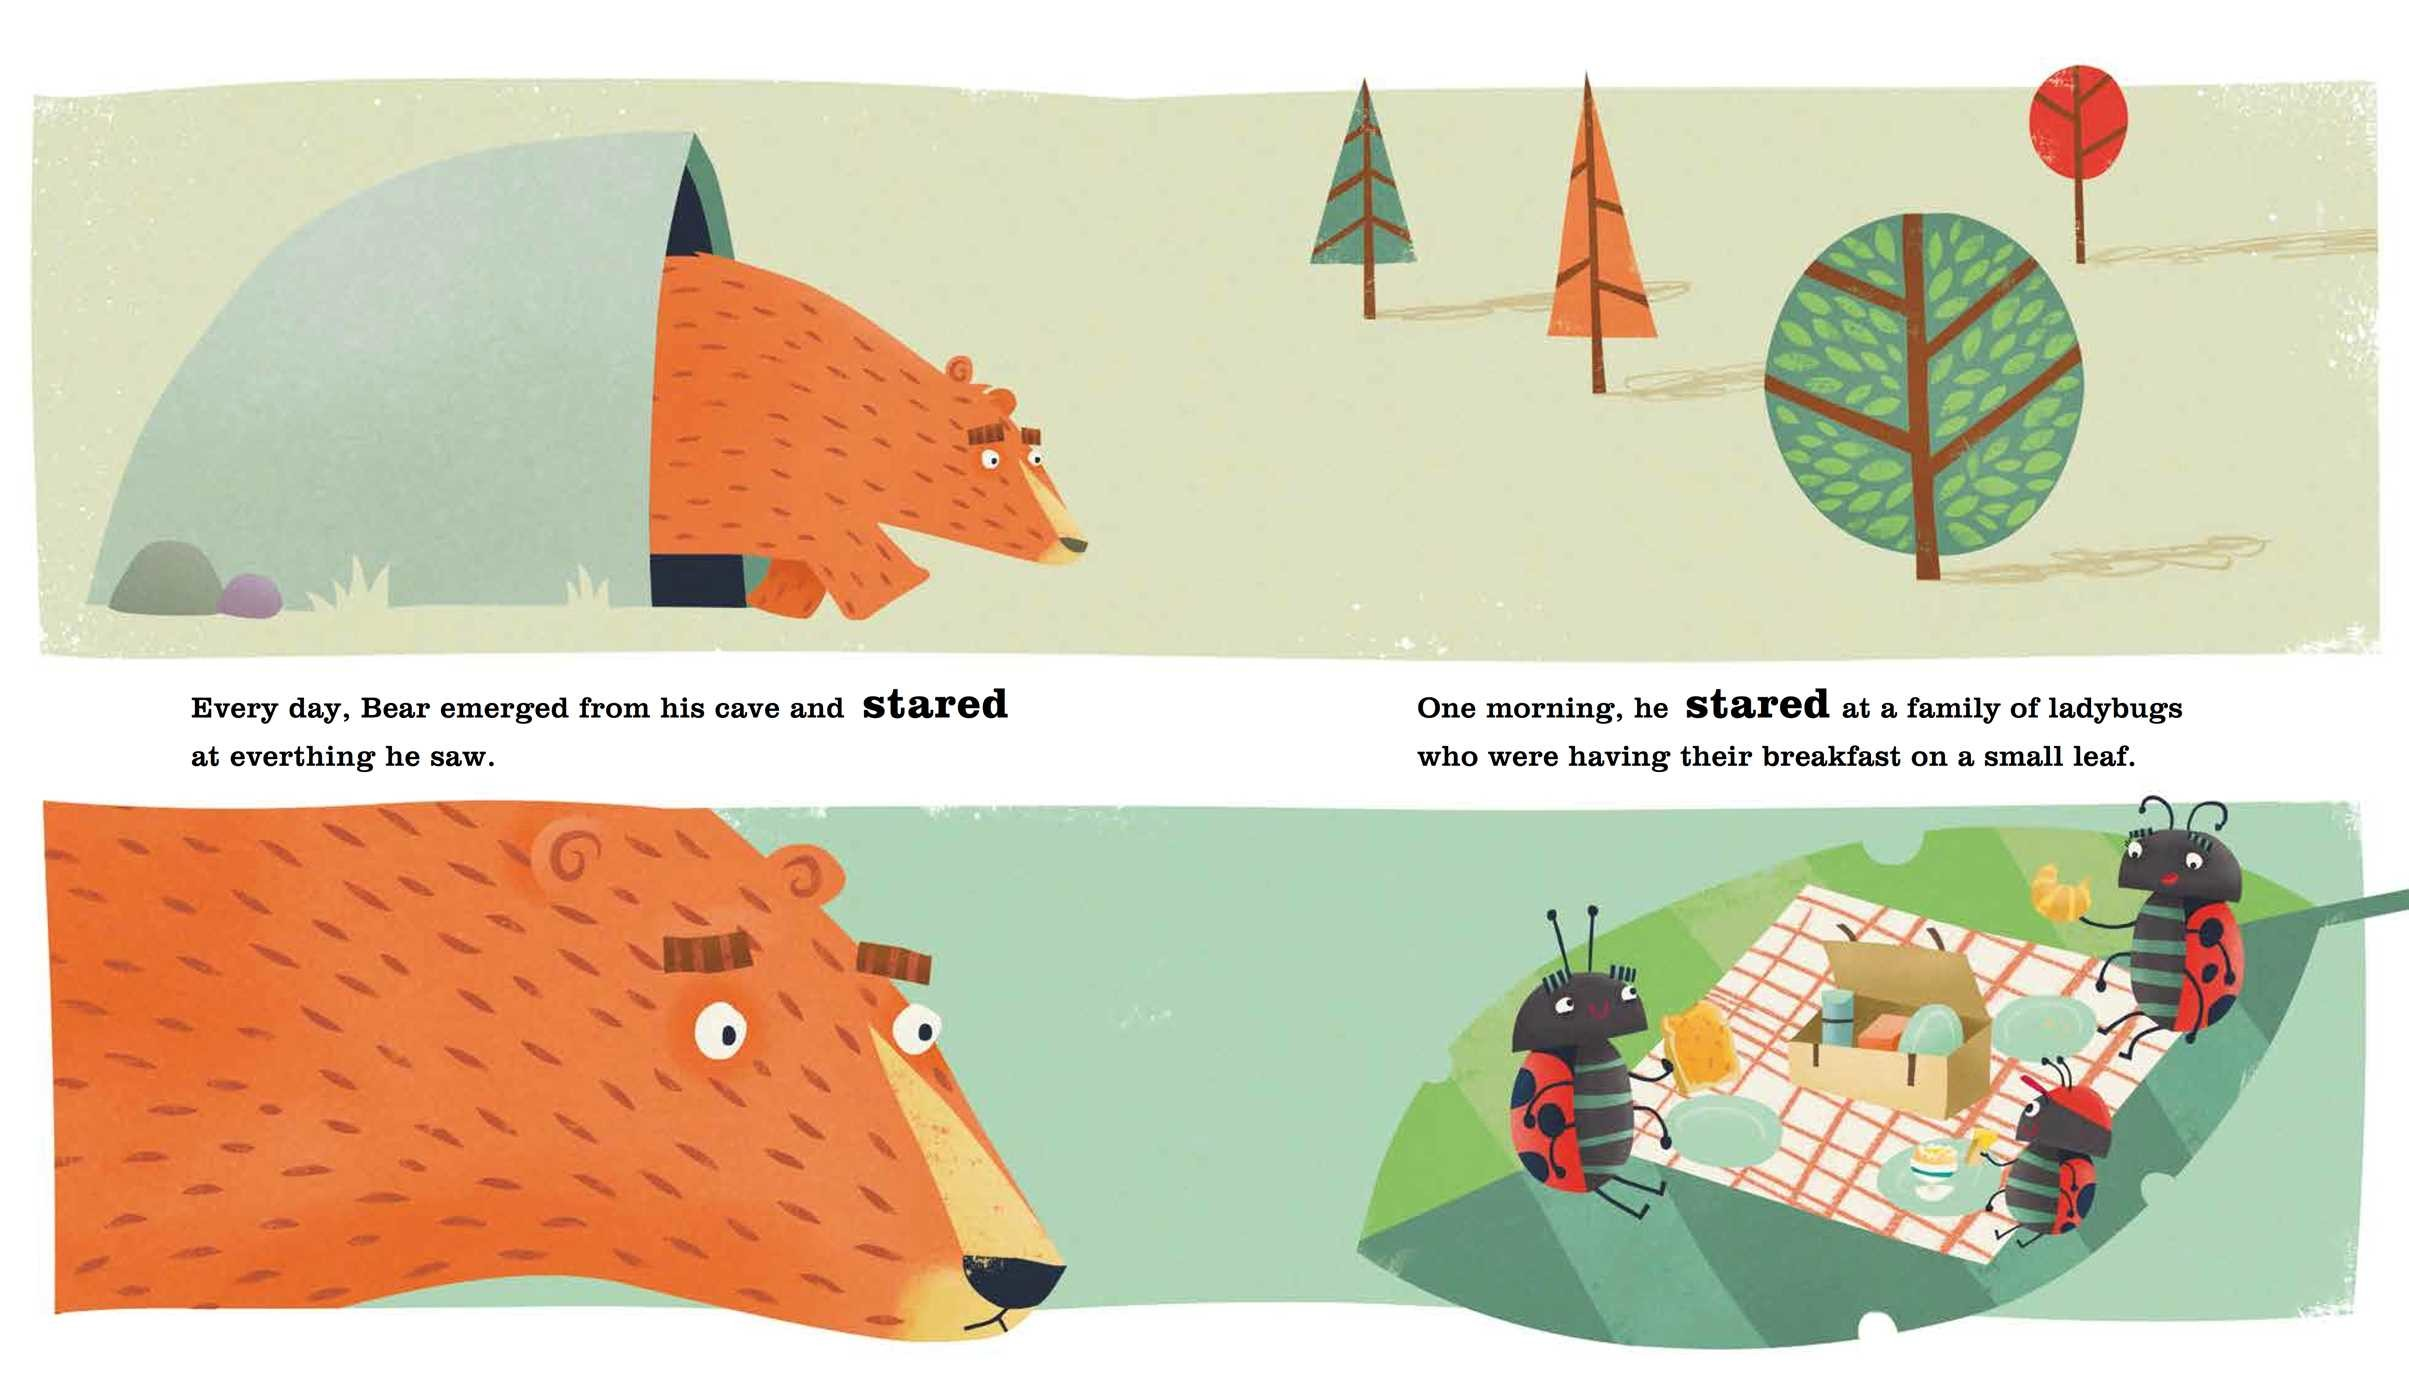 celebrate-picture-books-picture-book-review-the-bear-who-stared-interior-art-ladybugs